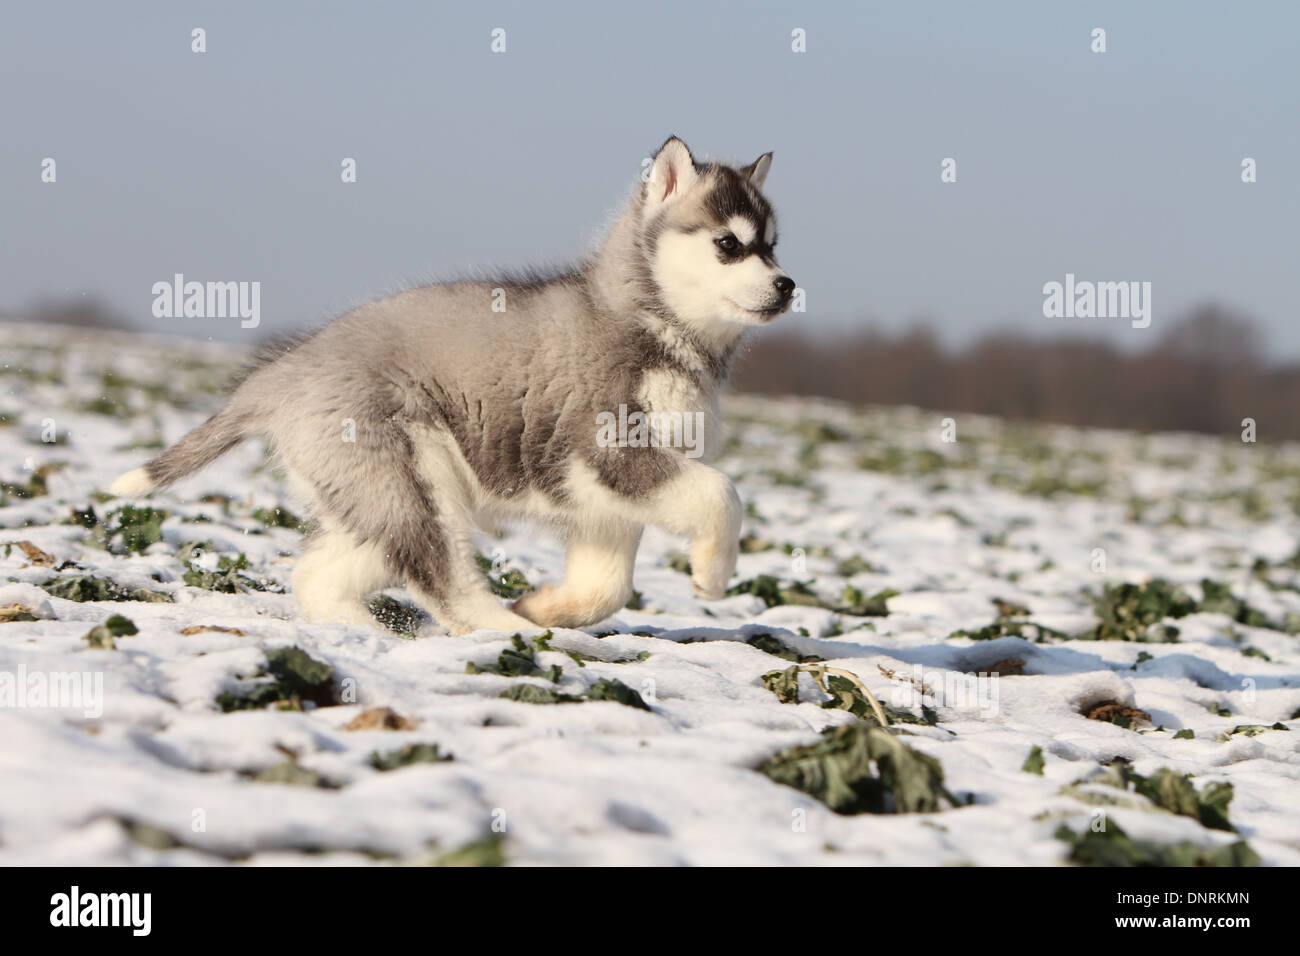 Dog Siberian Husky Puppy Running In The Snow Stock Photo 65059253